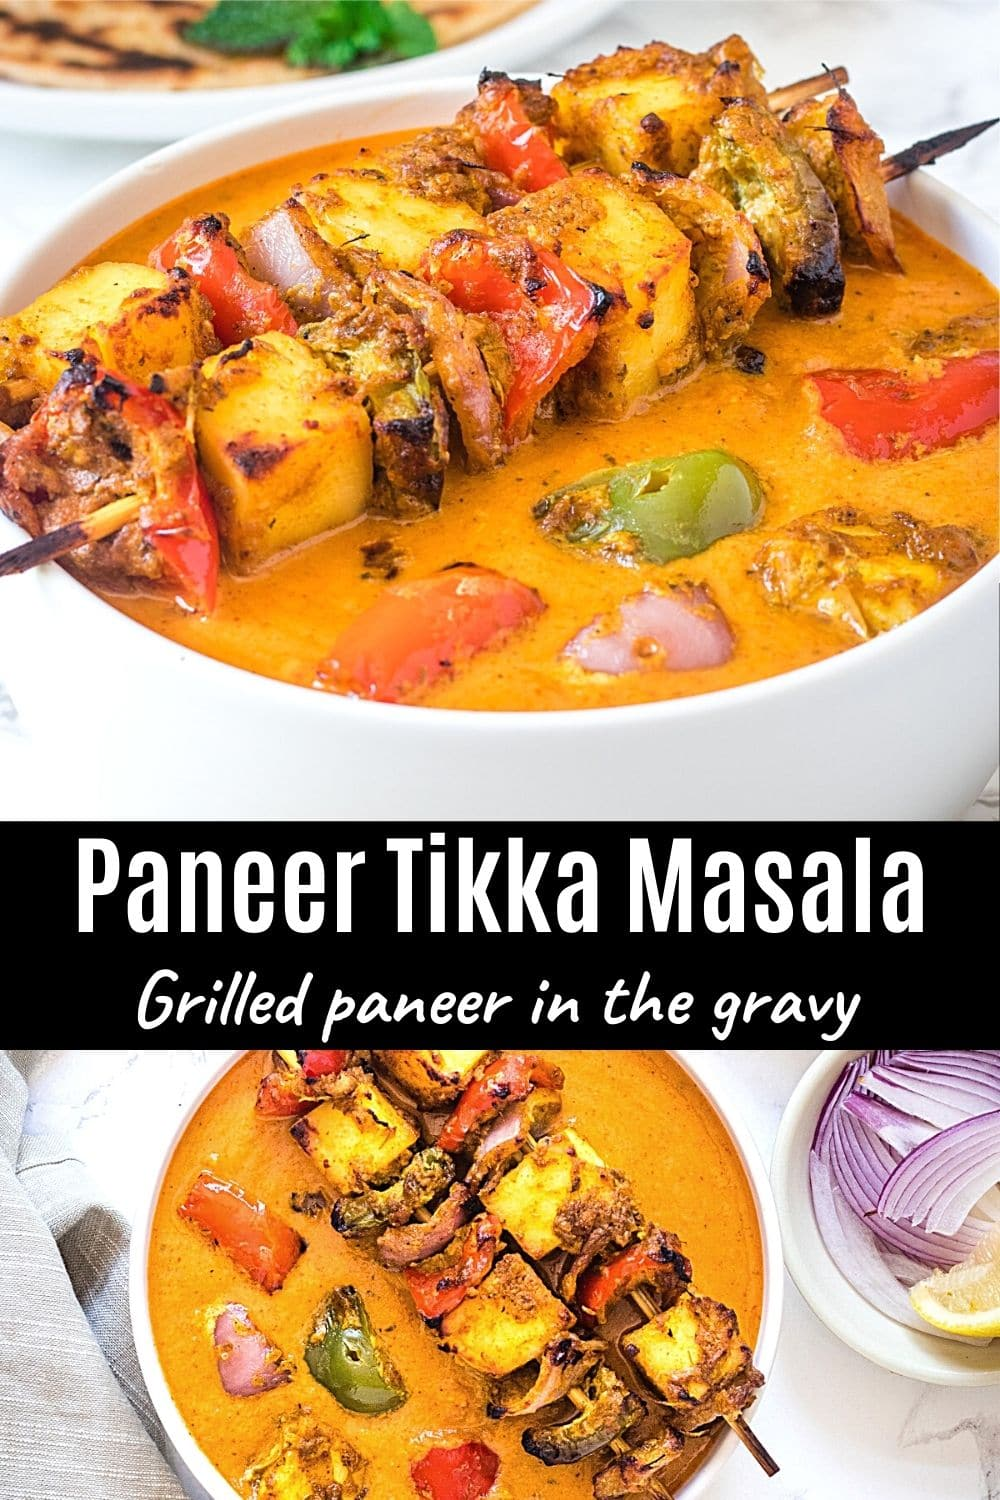 2 images of paneer tikka masala with text on the image for pinterest